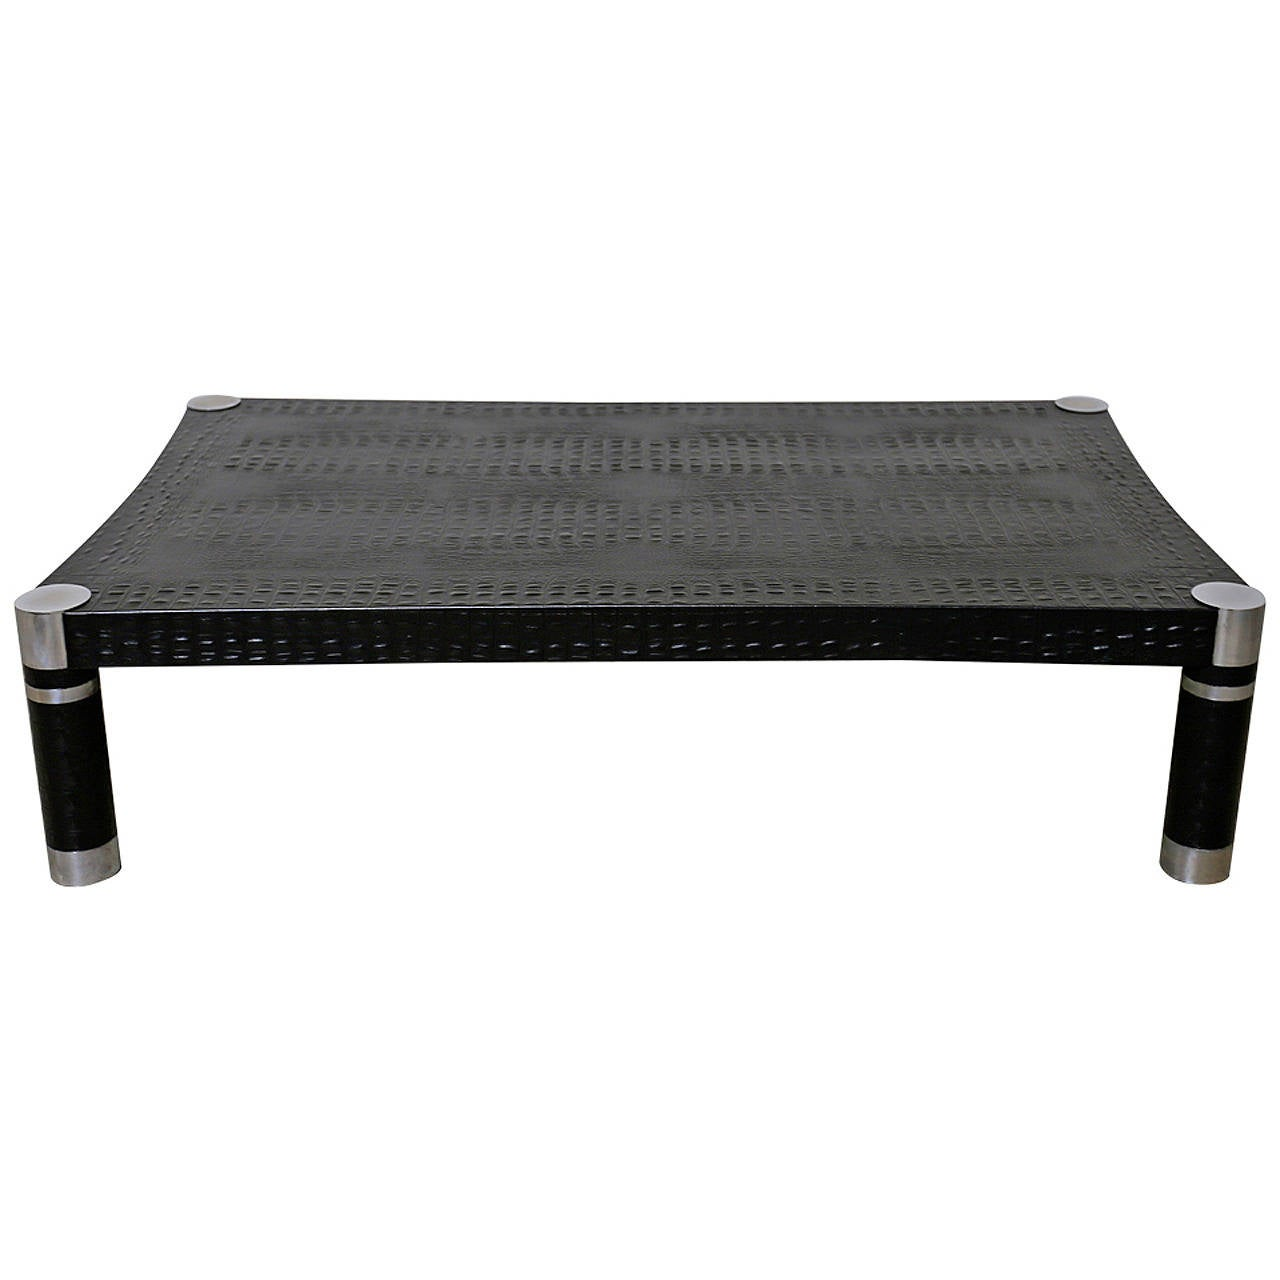 Alligator Embossed Leather Coffee Table By Karl Springer At 1stdibs